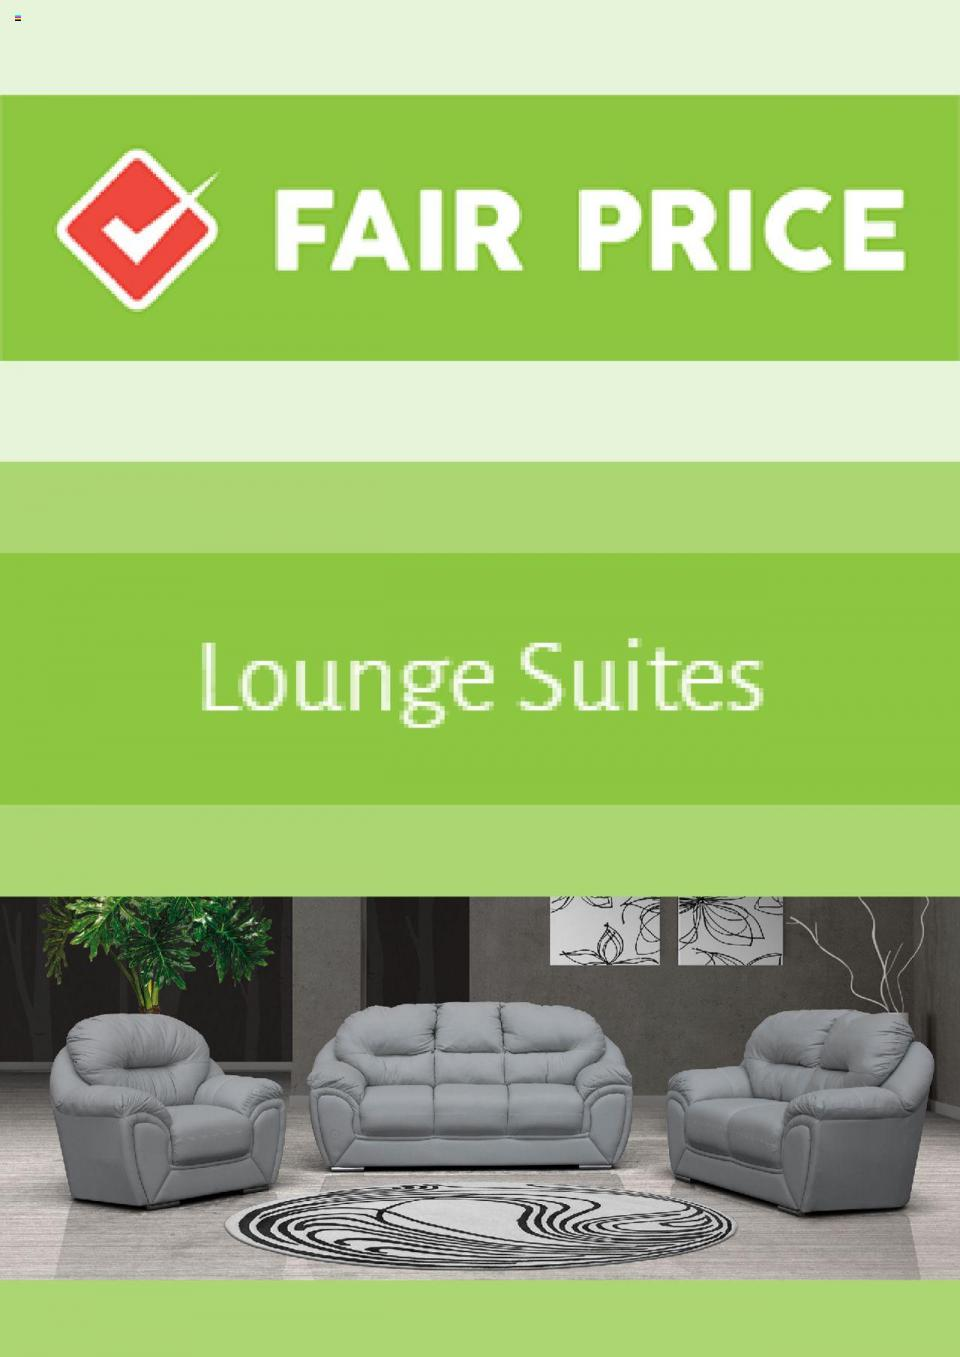 fair price specials 3 june 2020